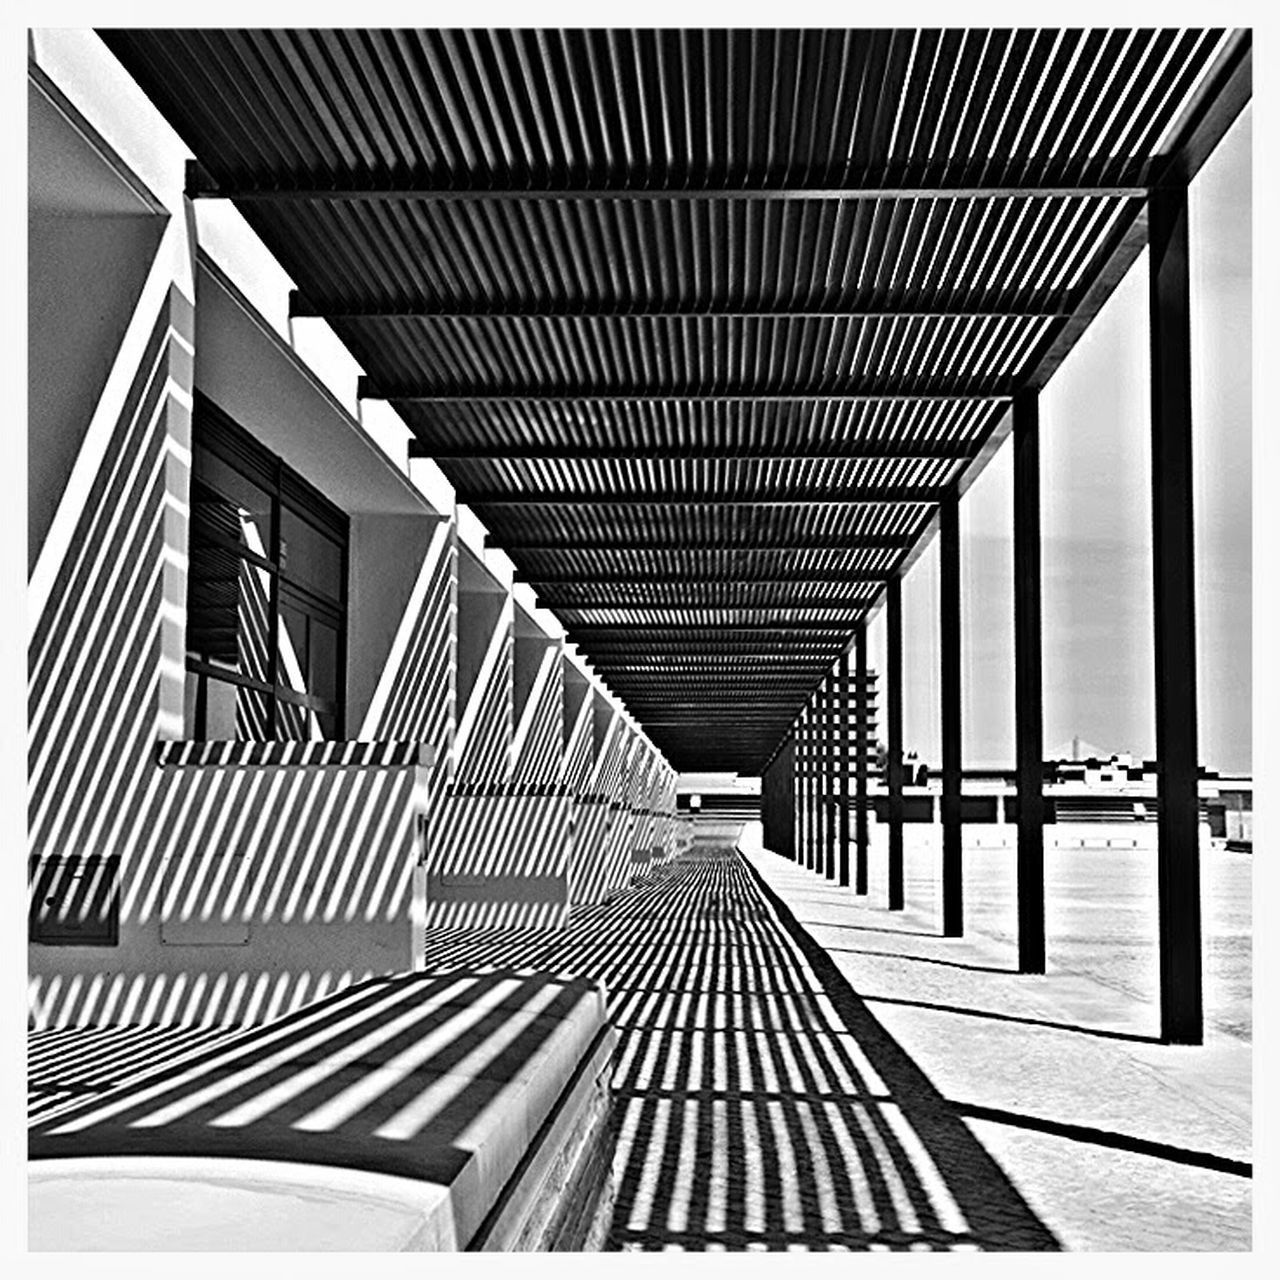 Light Hardlight Shadow Lines Arquitecture Black & White